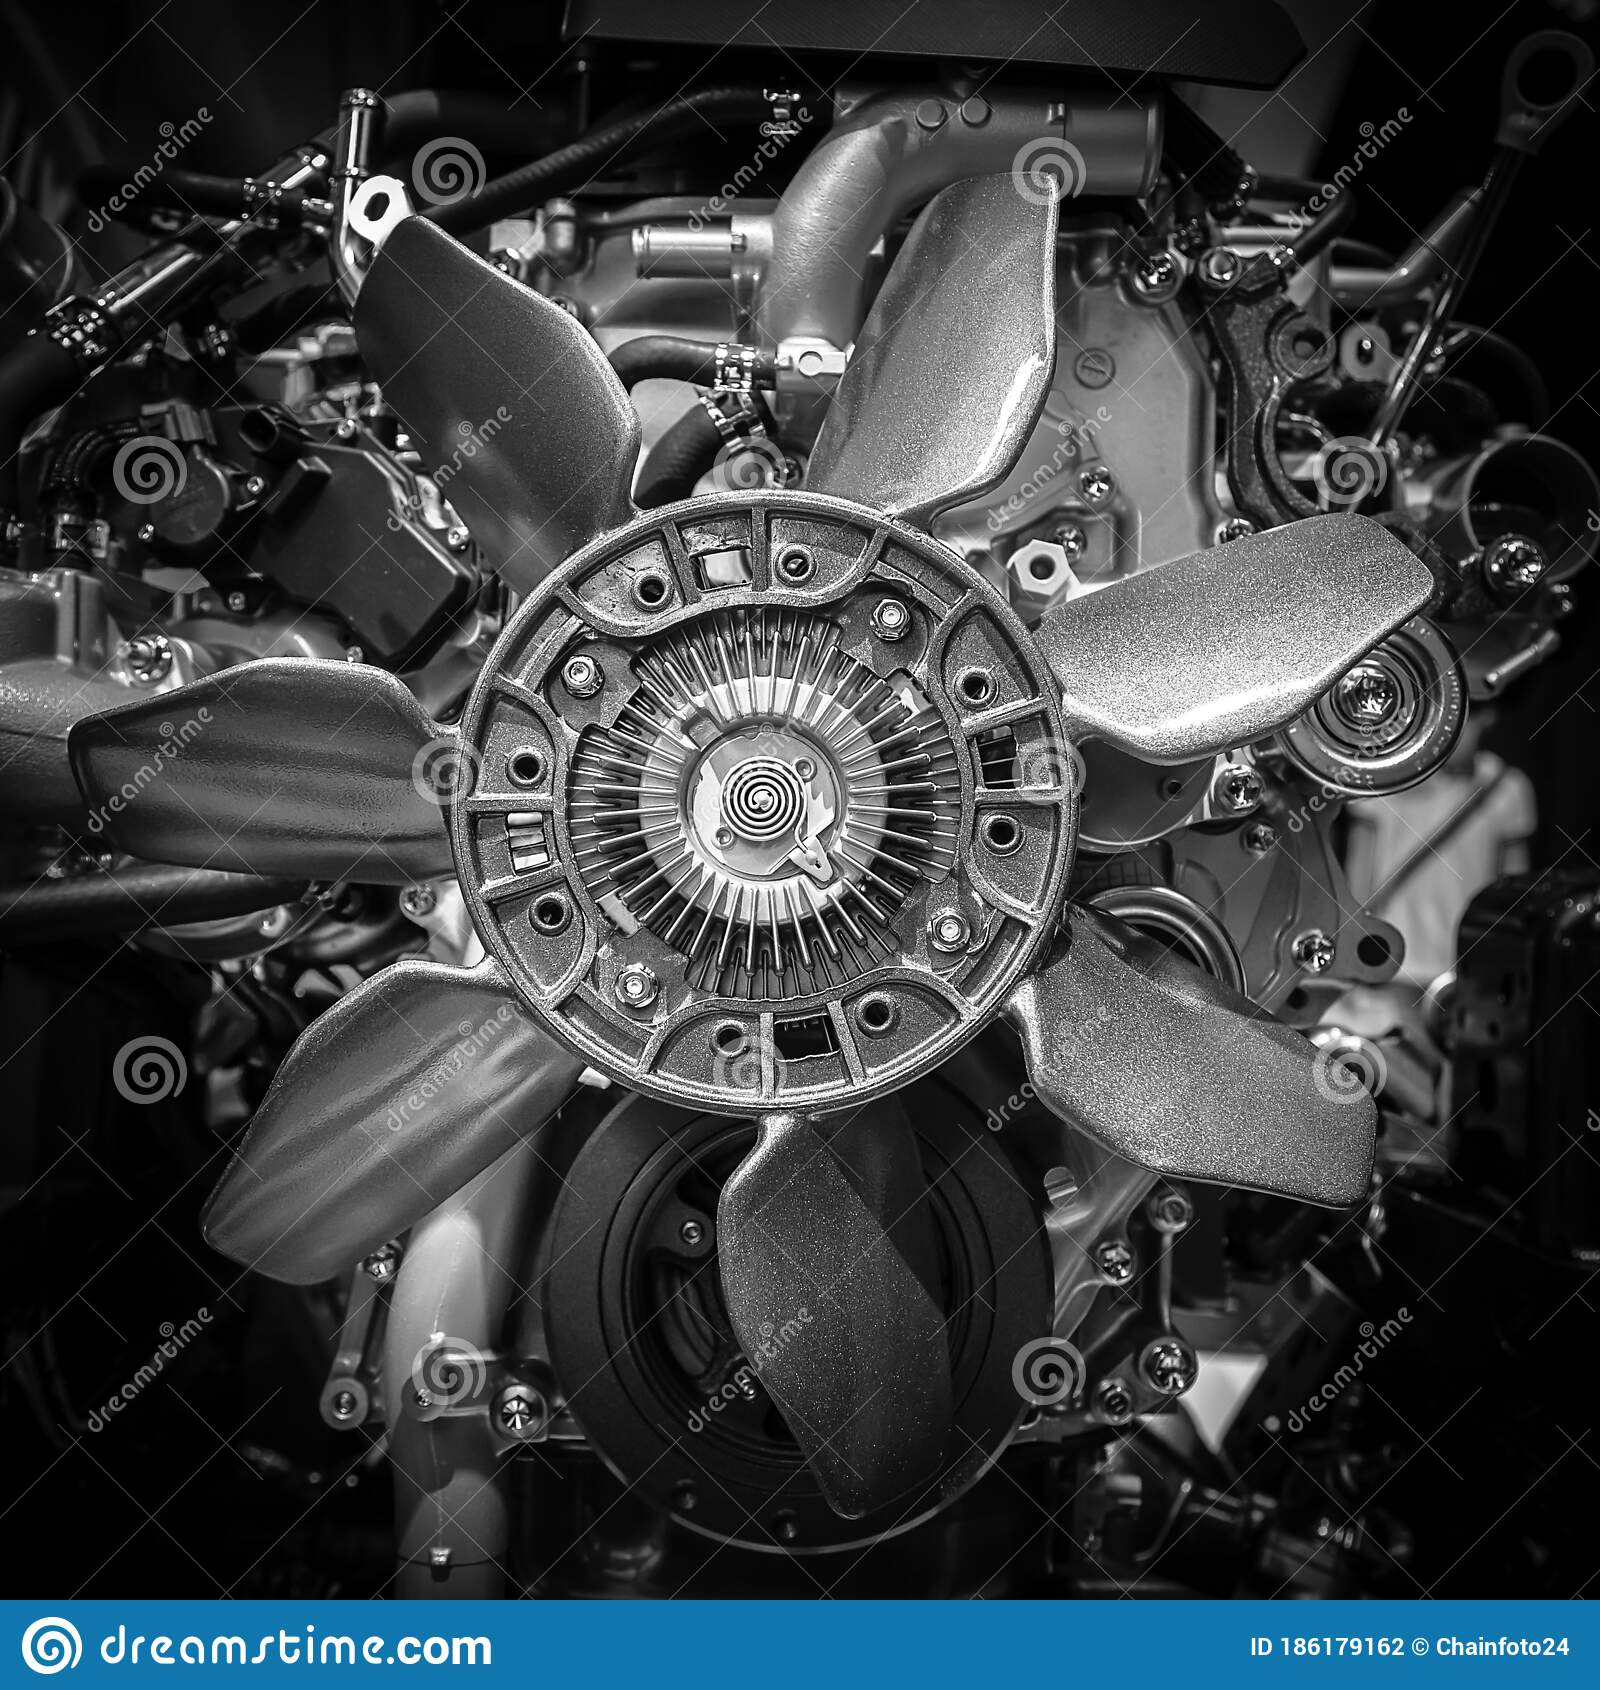 Close Up Of Car Engine Black And White Color Stock Photo Image Of Engineering Auto 186179162